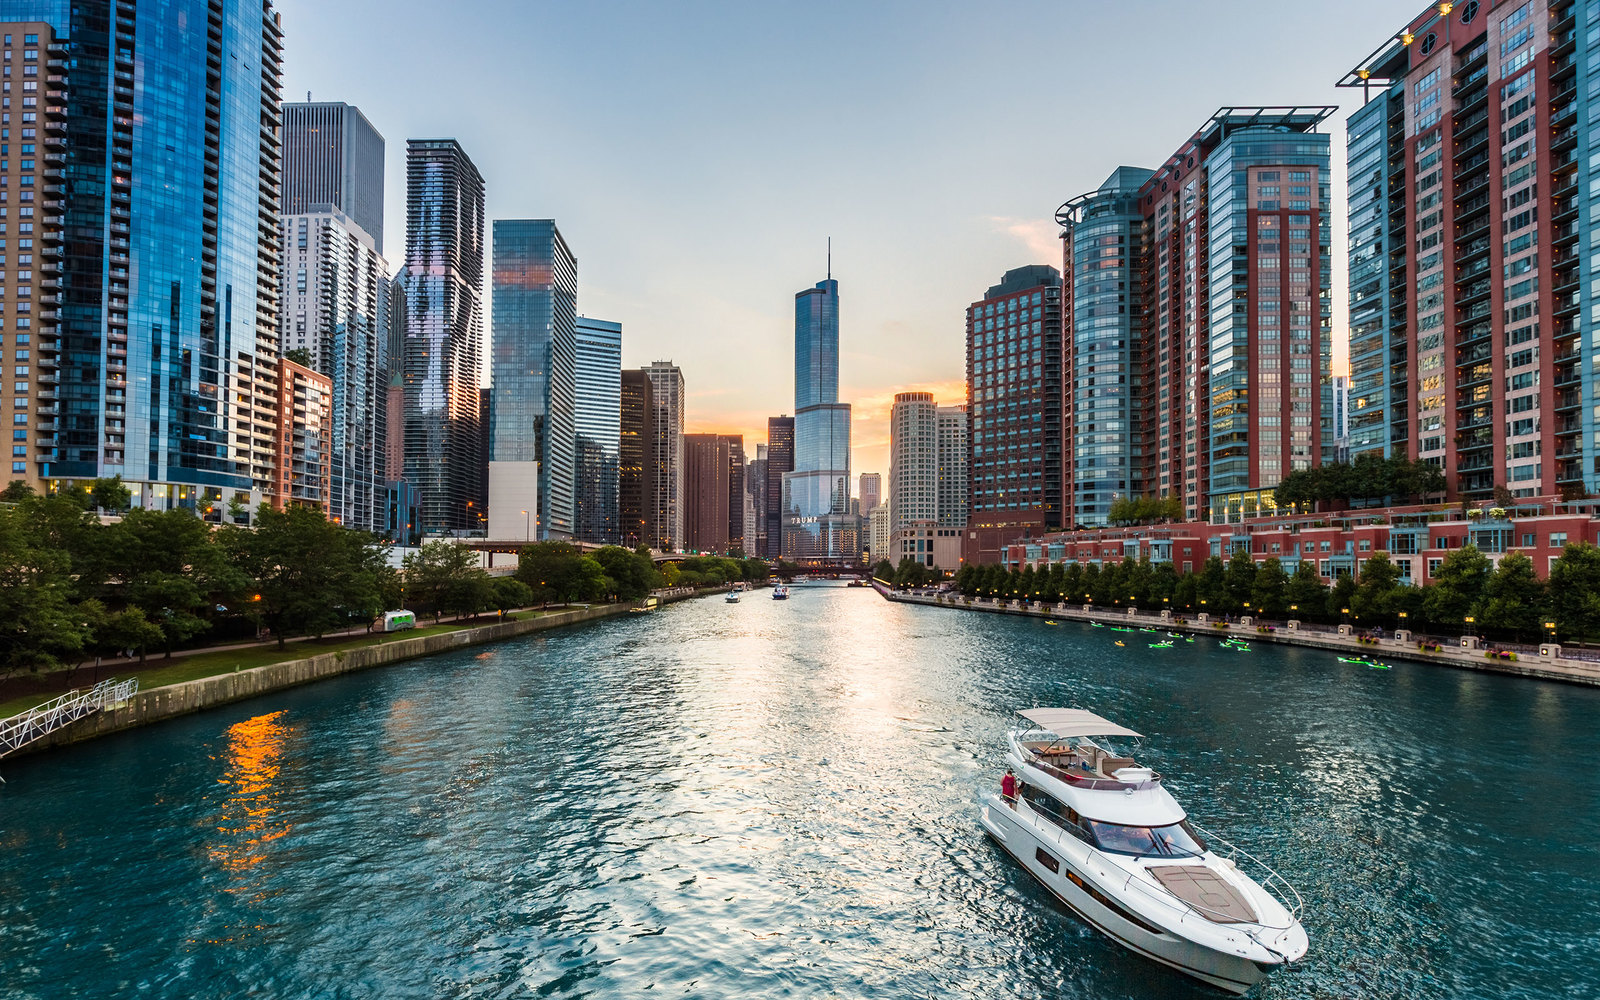 lakeside chicagos lakeshore drive - HD 2112×1320